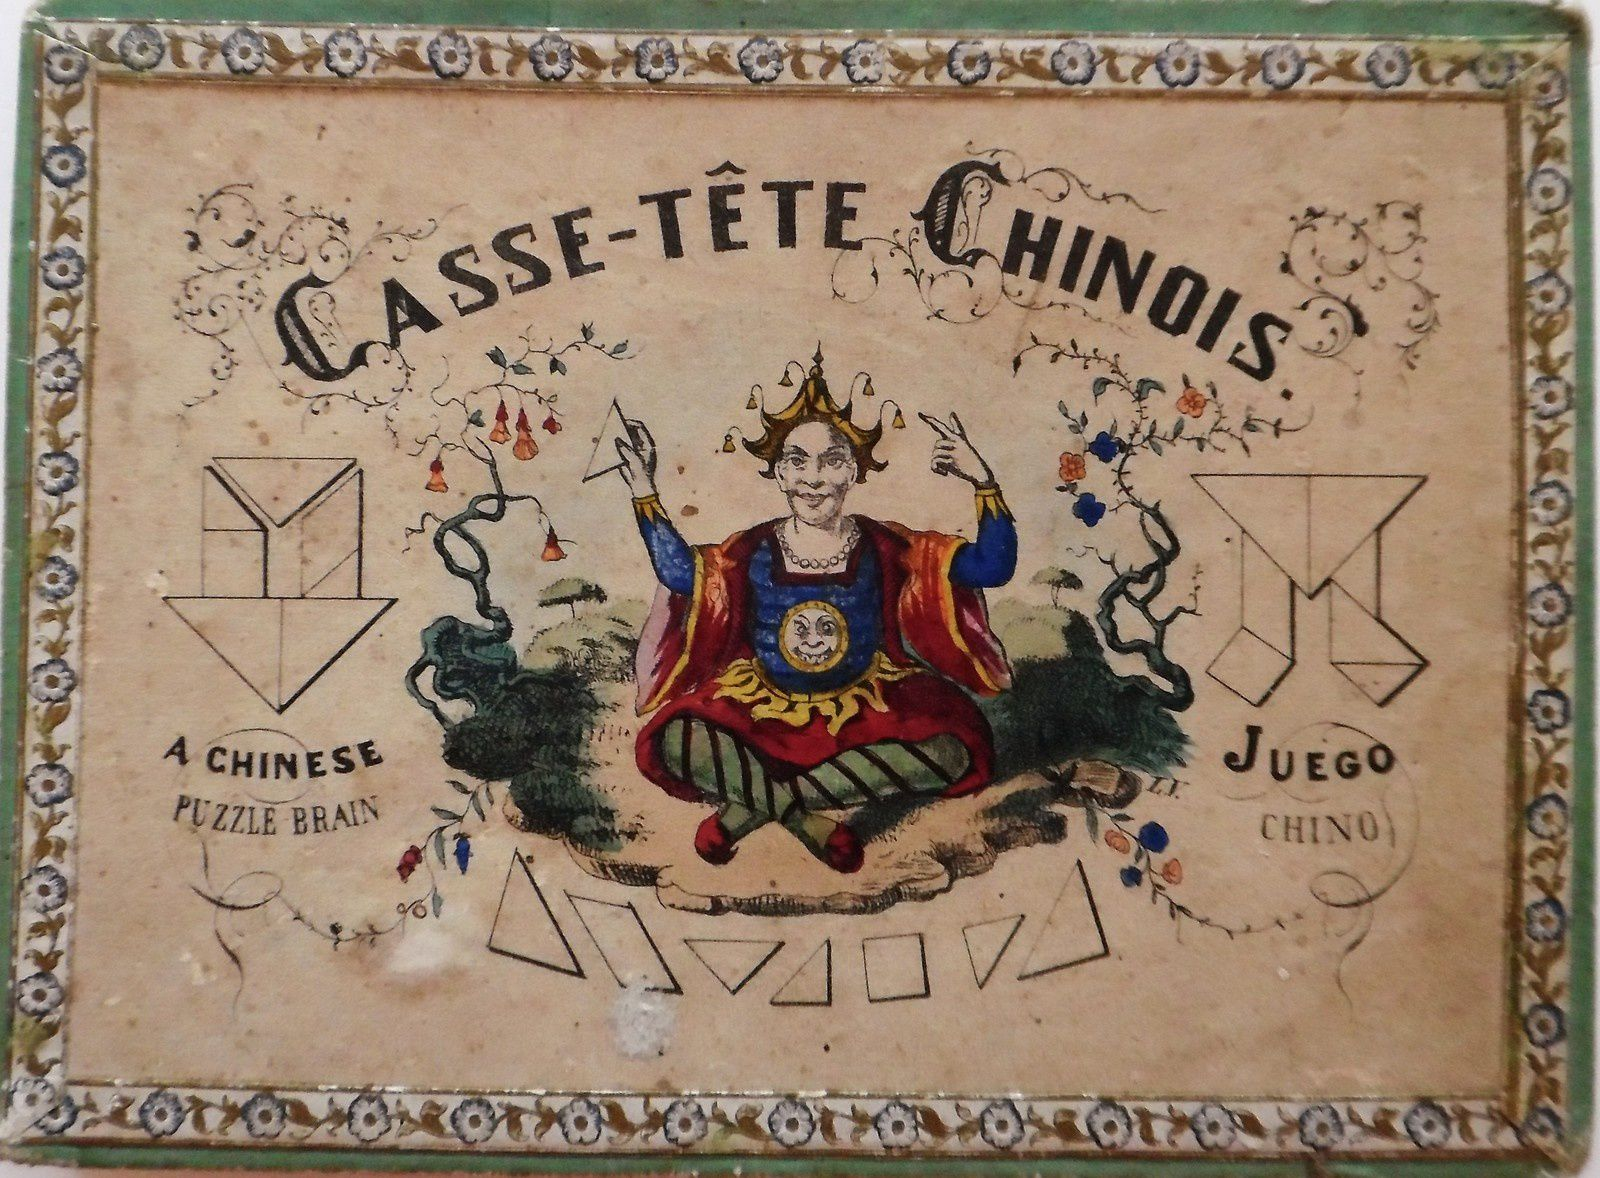 casse-tête chinois, vers 1880